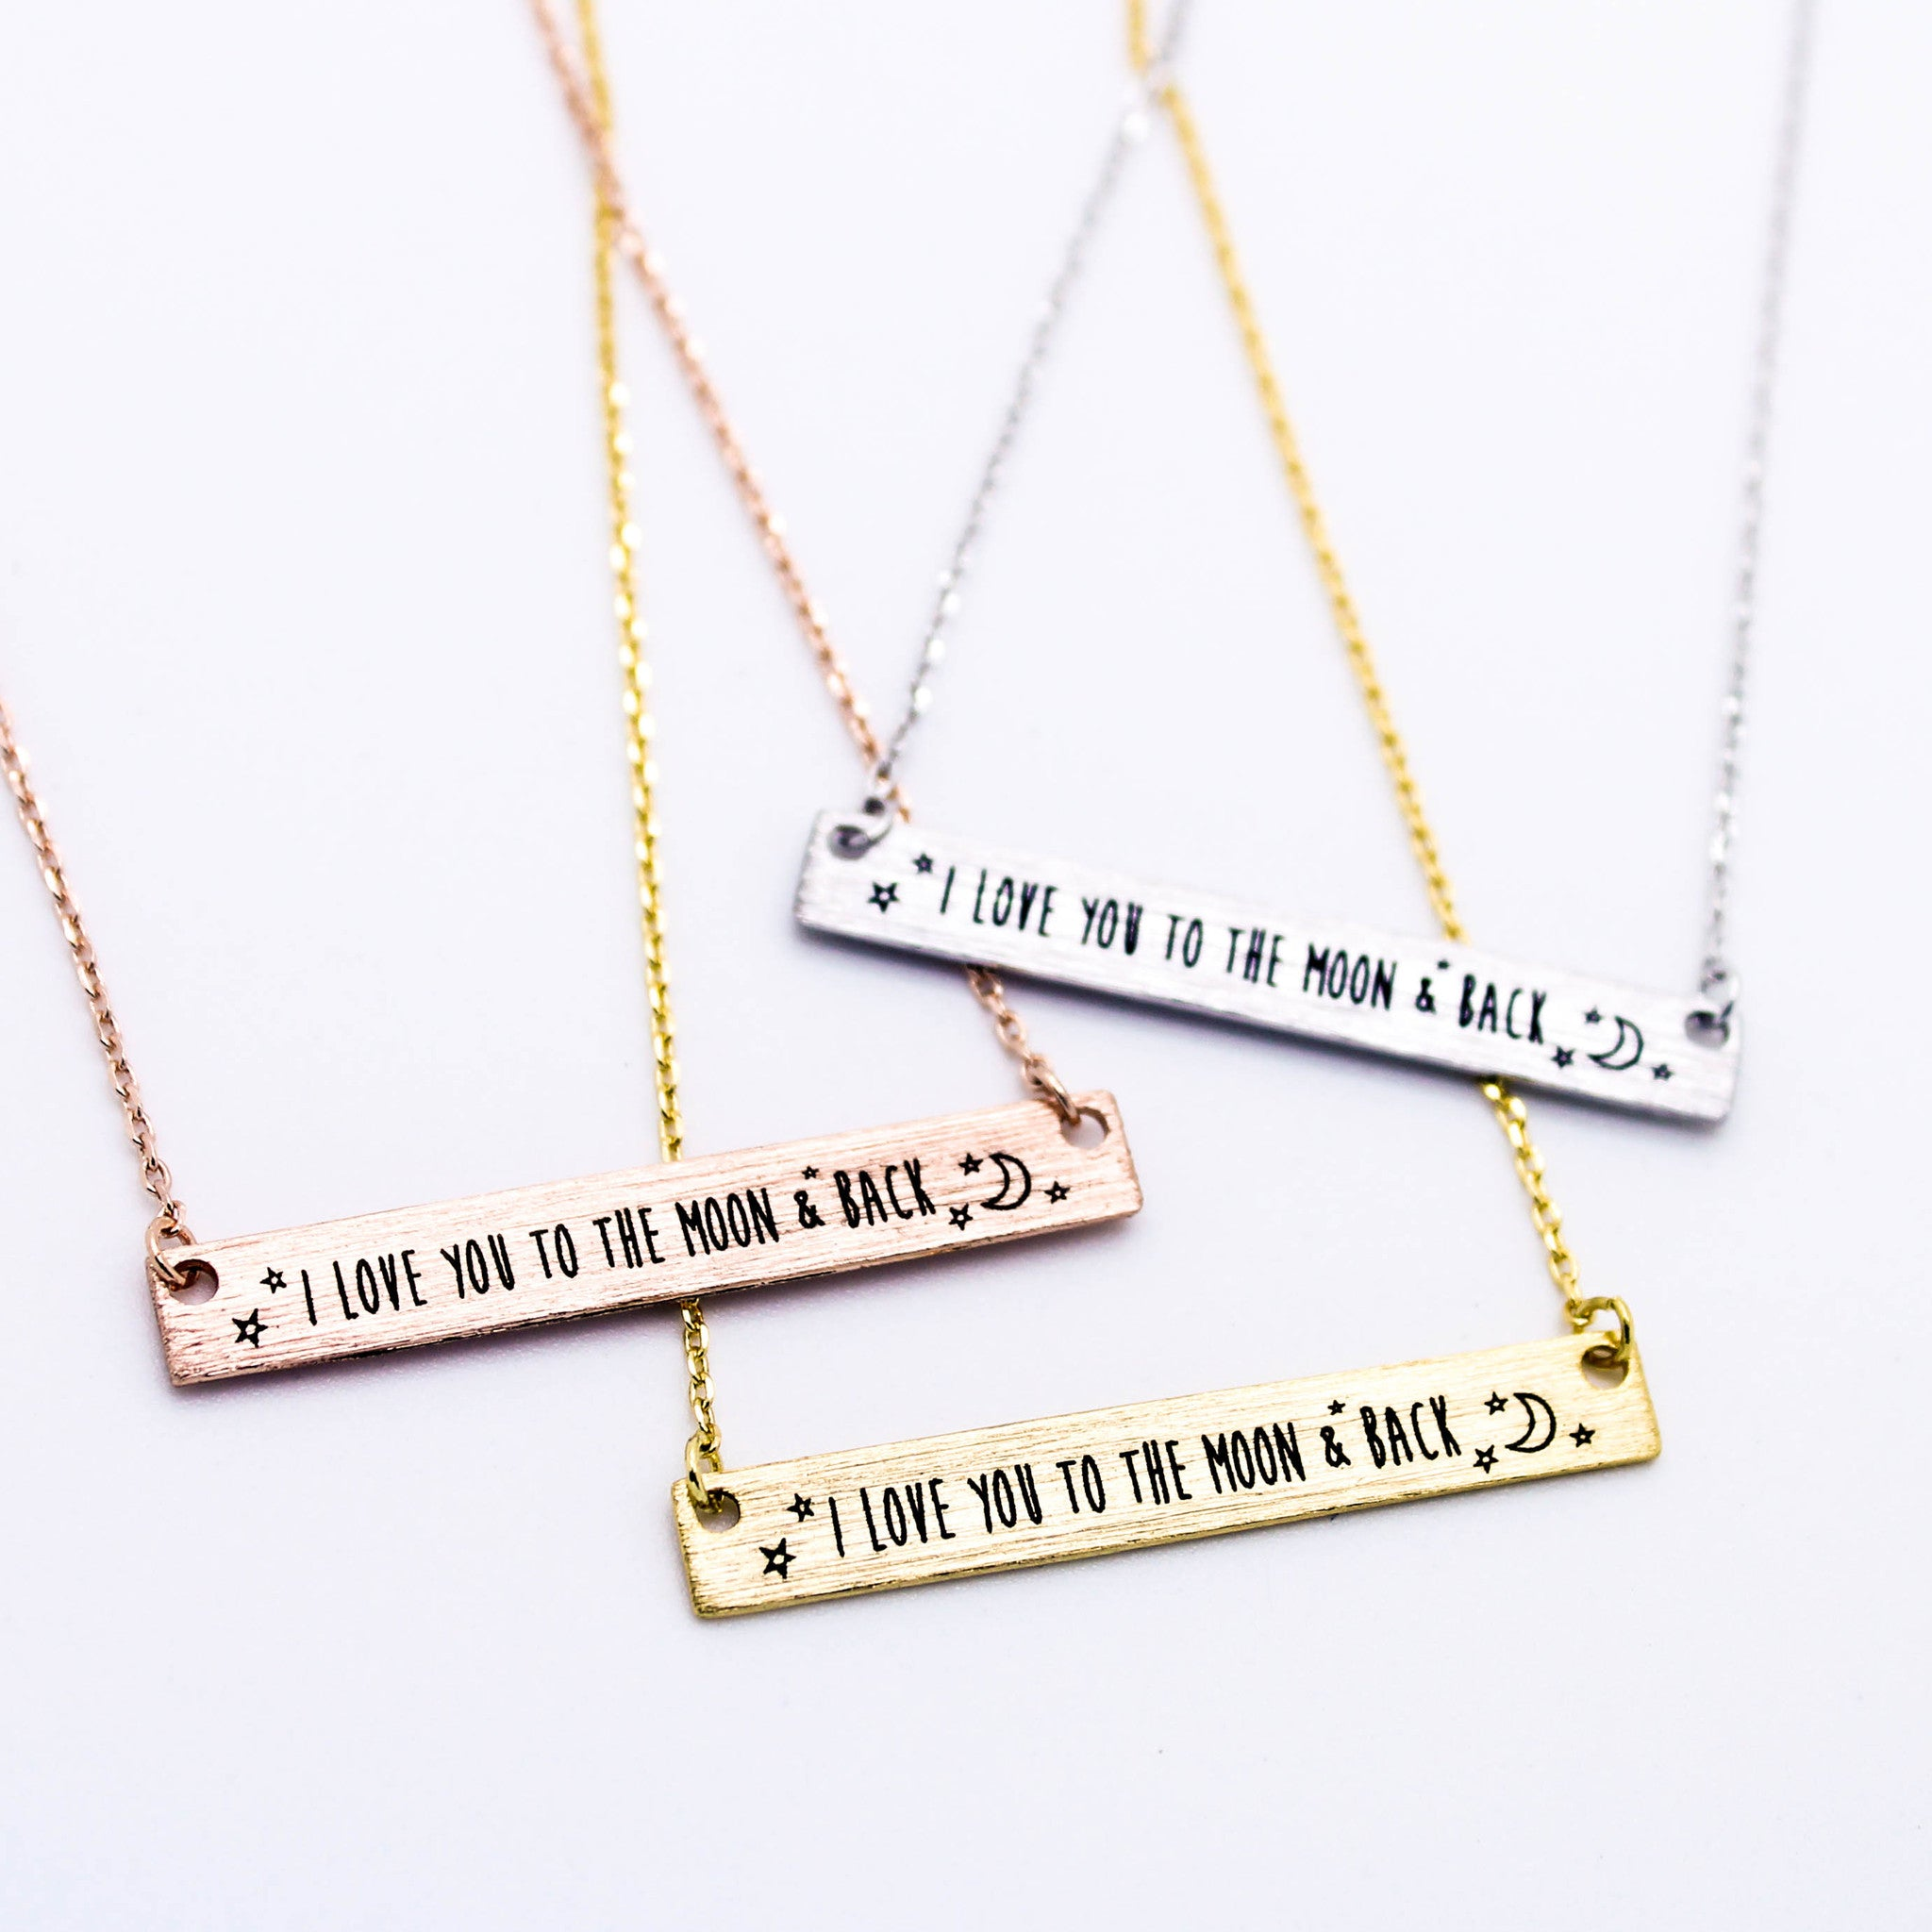 fd6414d838 I love you to the moon & back necklace - Imsmistyle